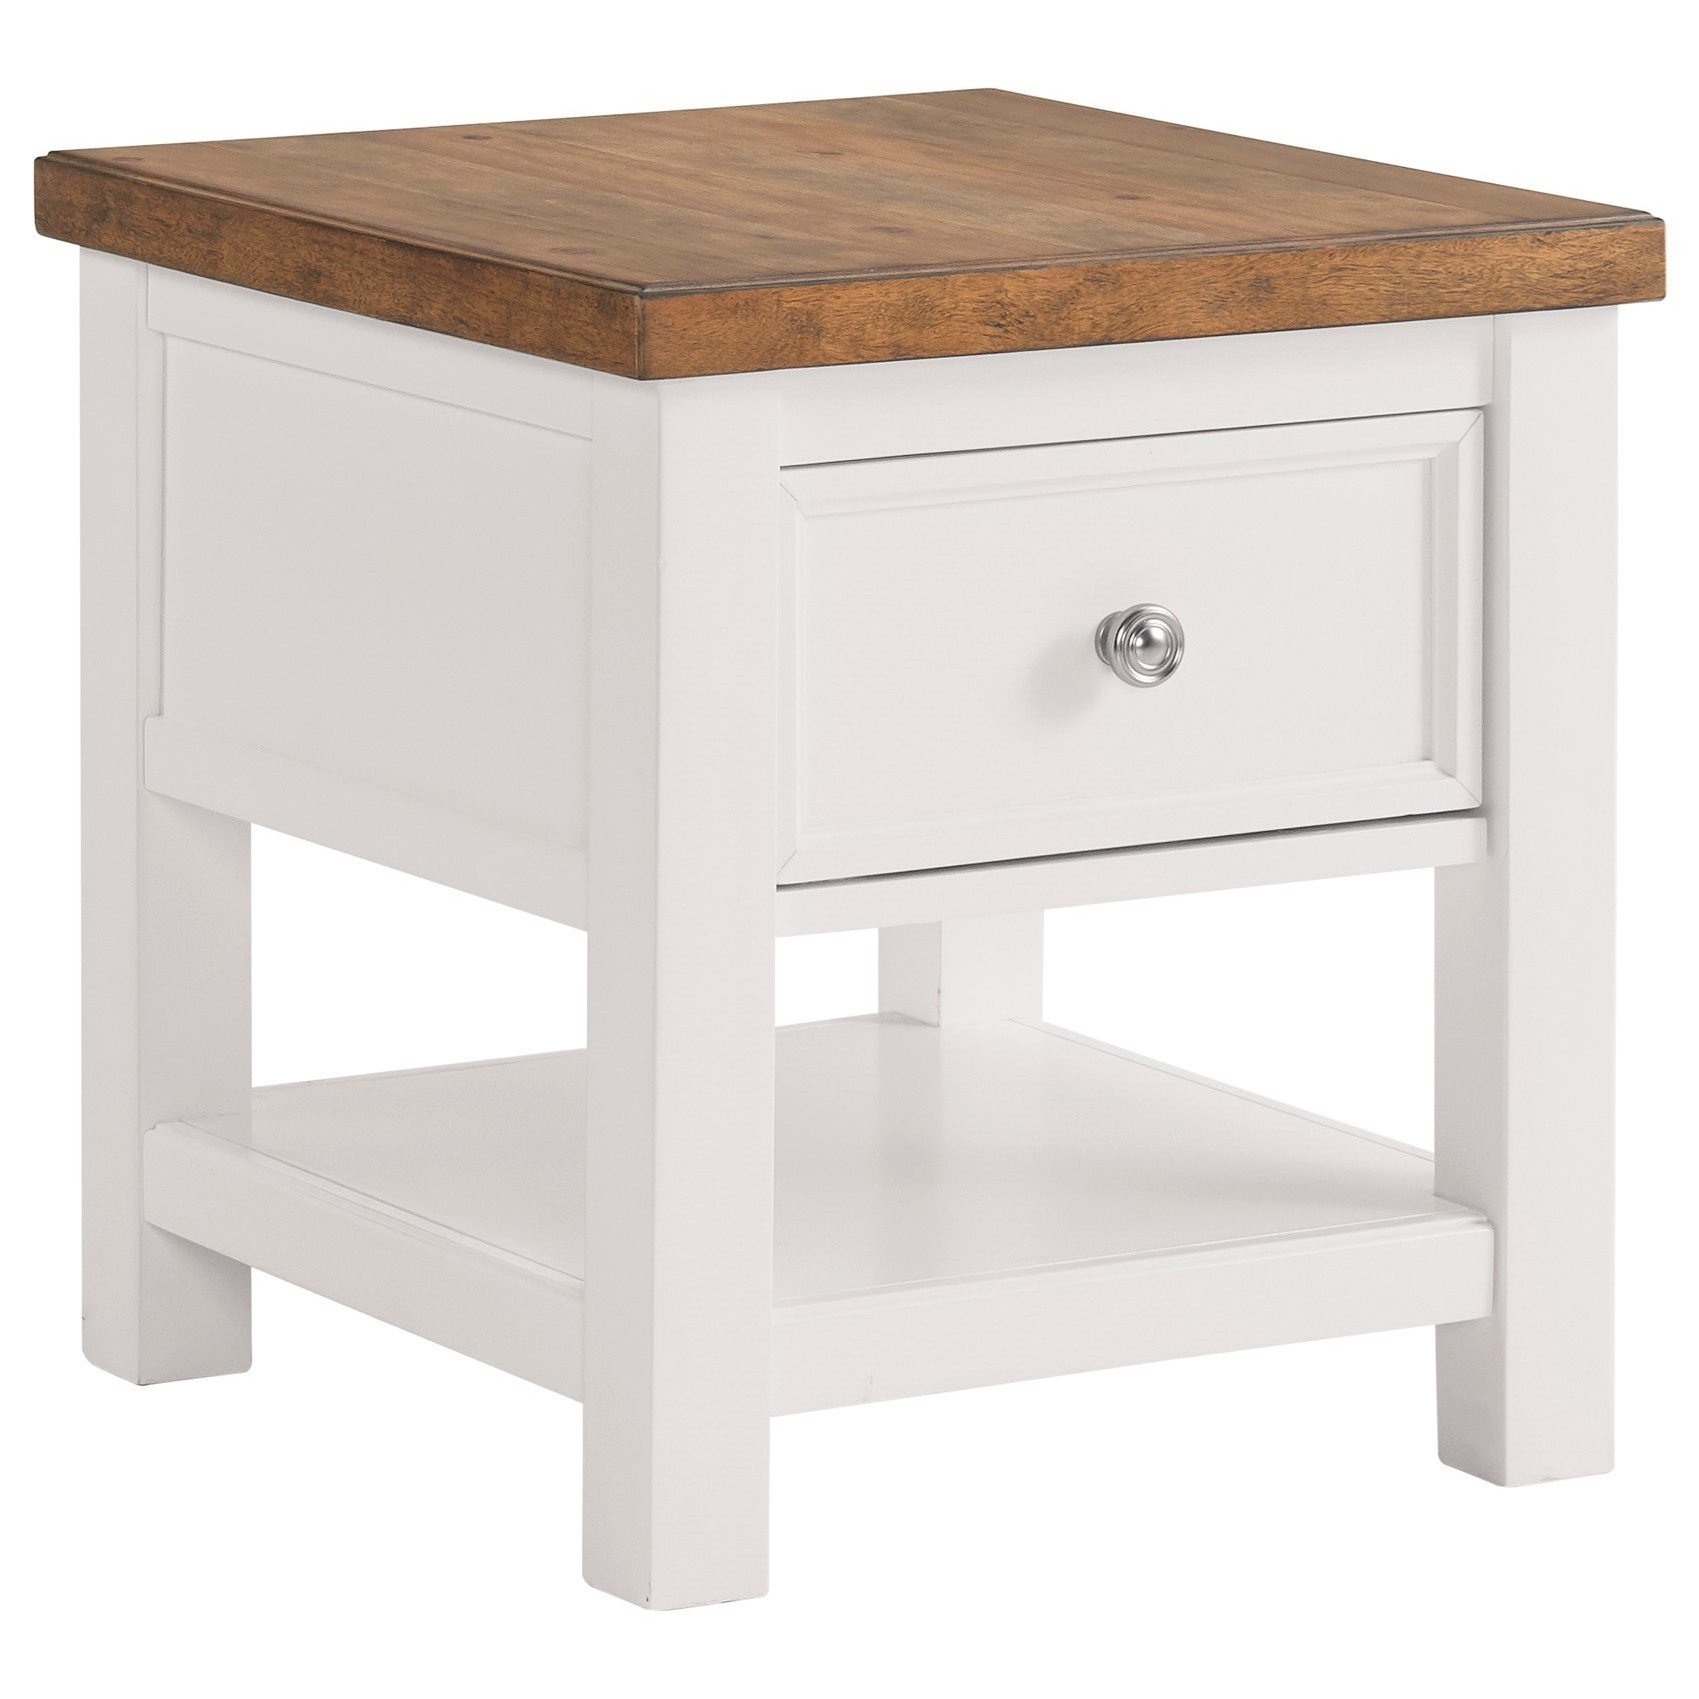 Westconi End Table by Ashley Furniture at HomeWorld Furniture